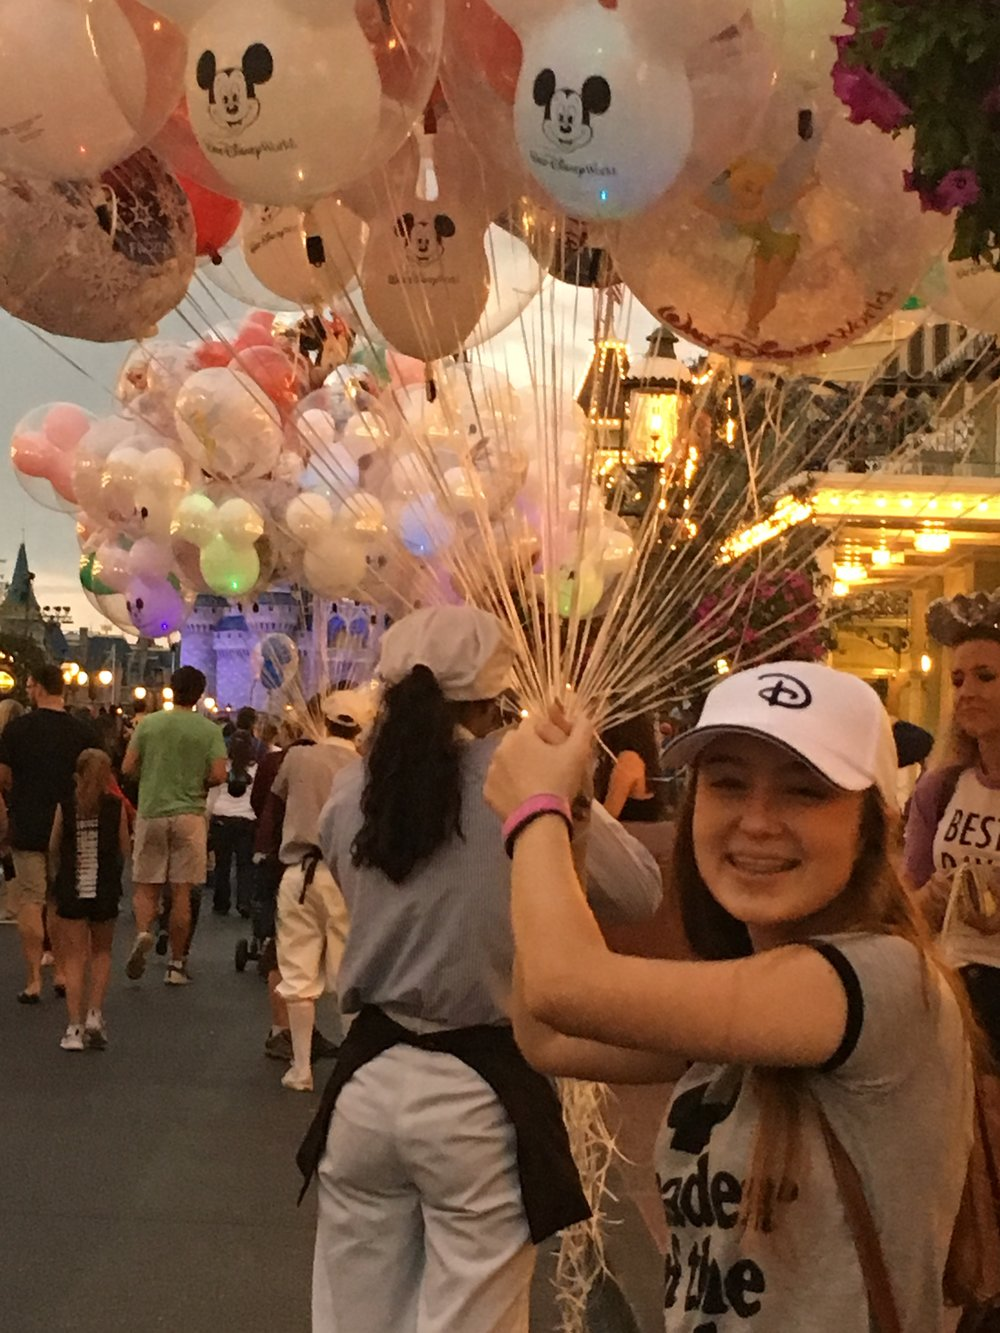 Yes, my kids love balloons too - Disney's Magic Kingdom